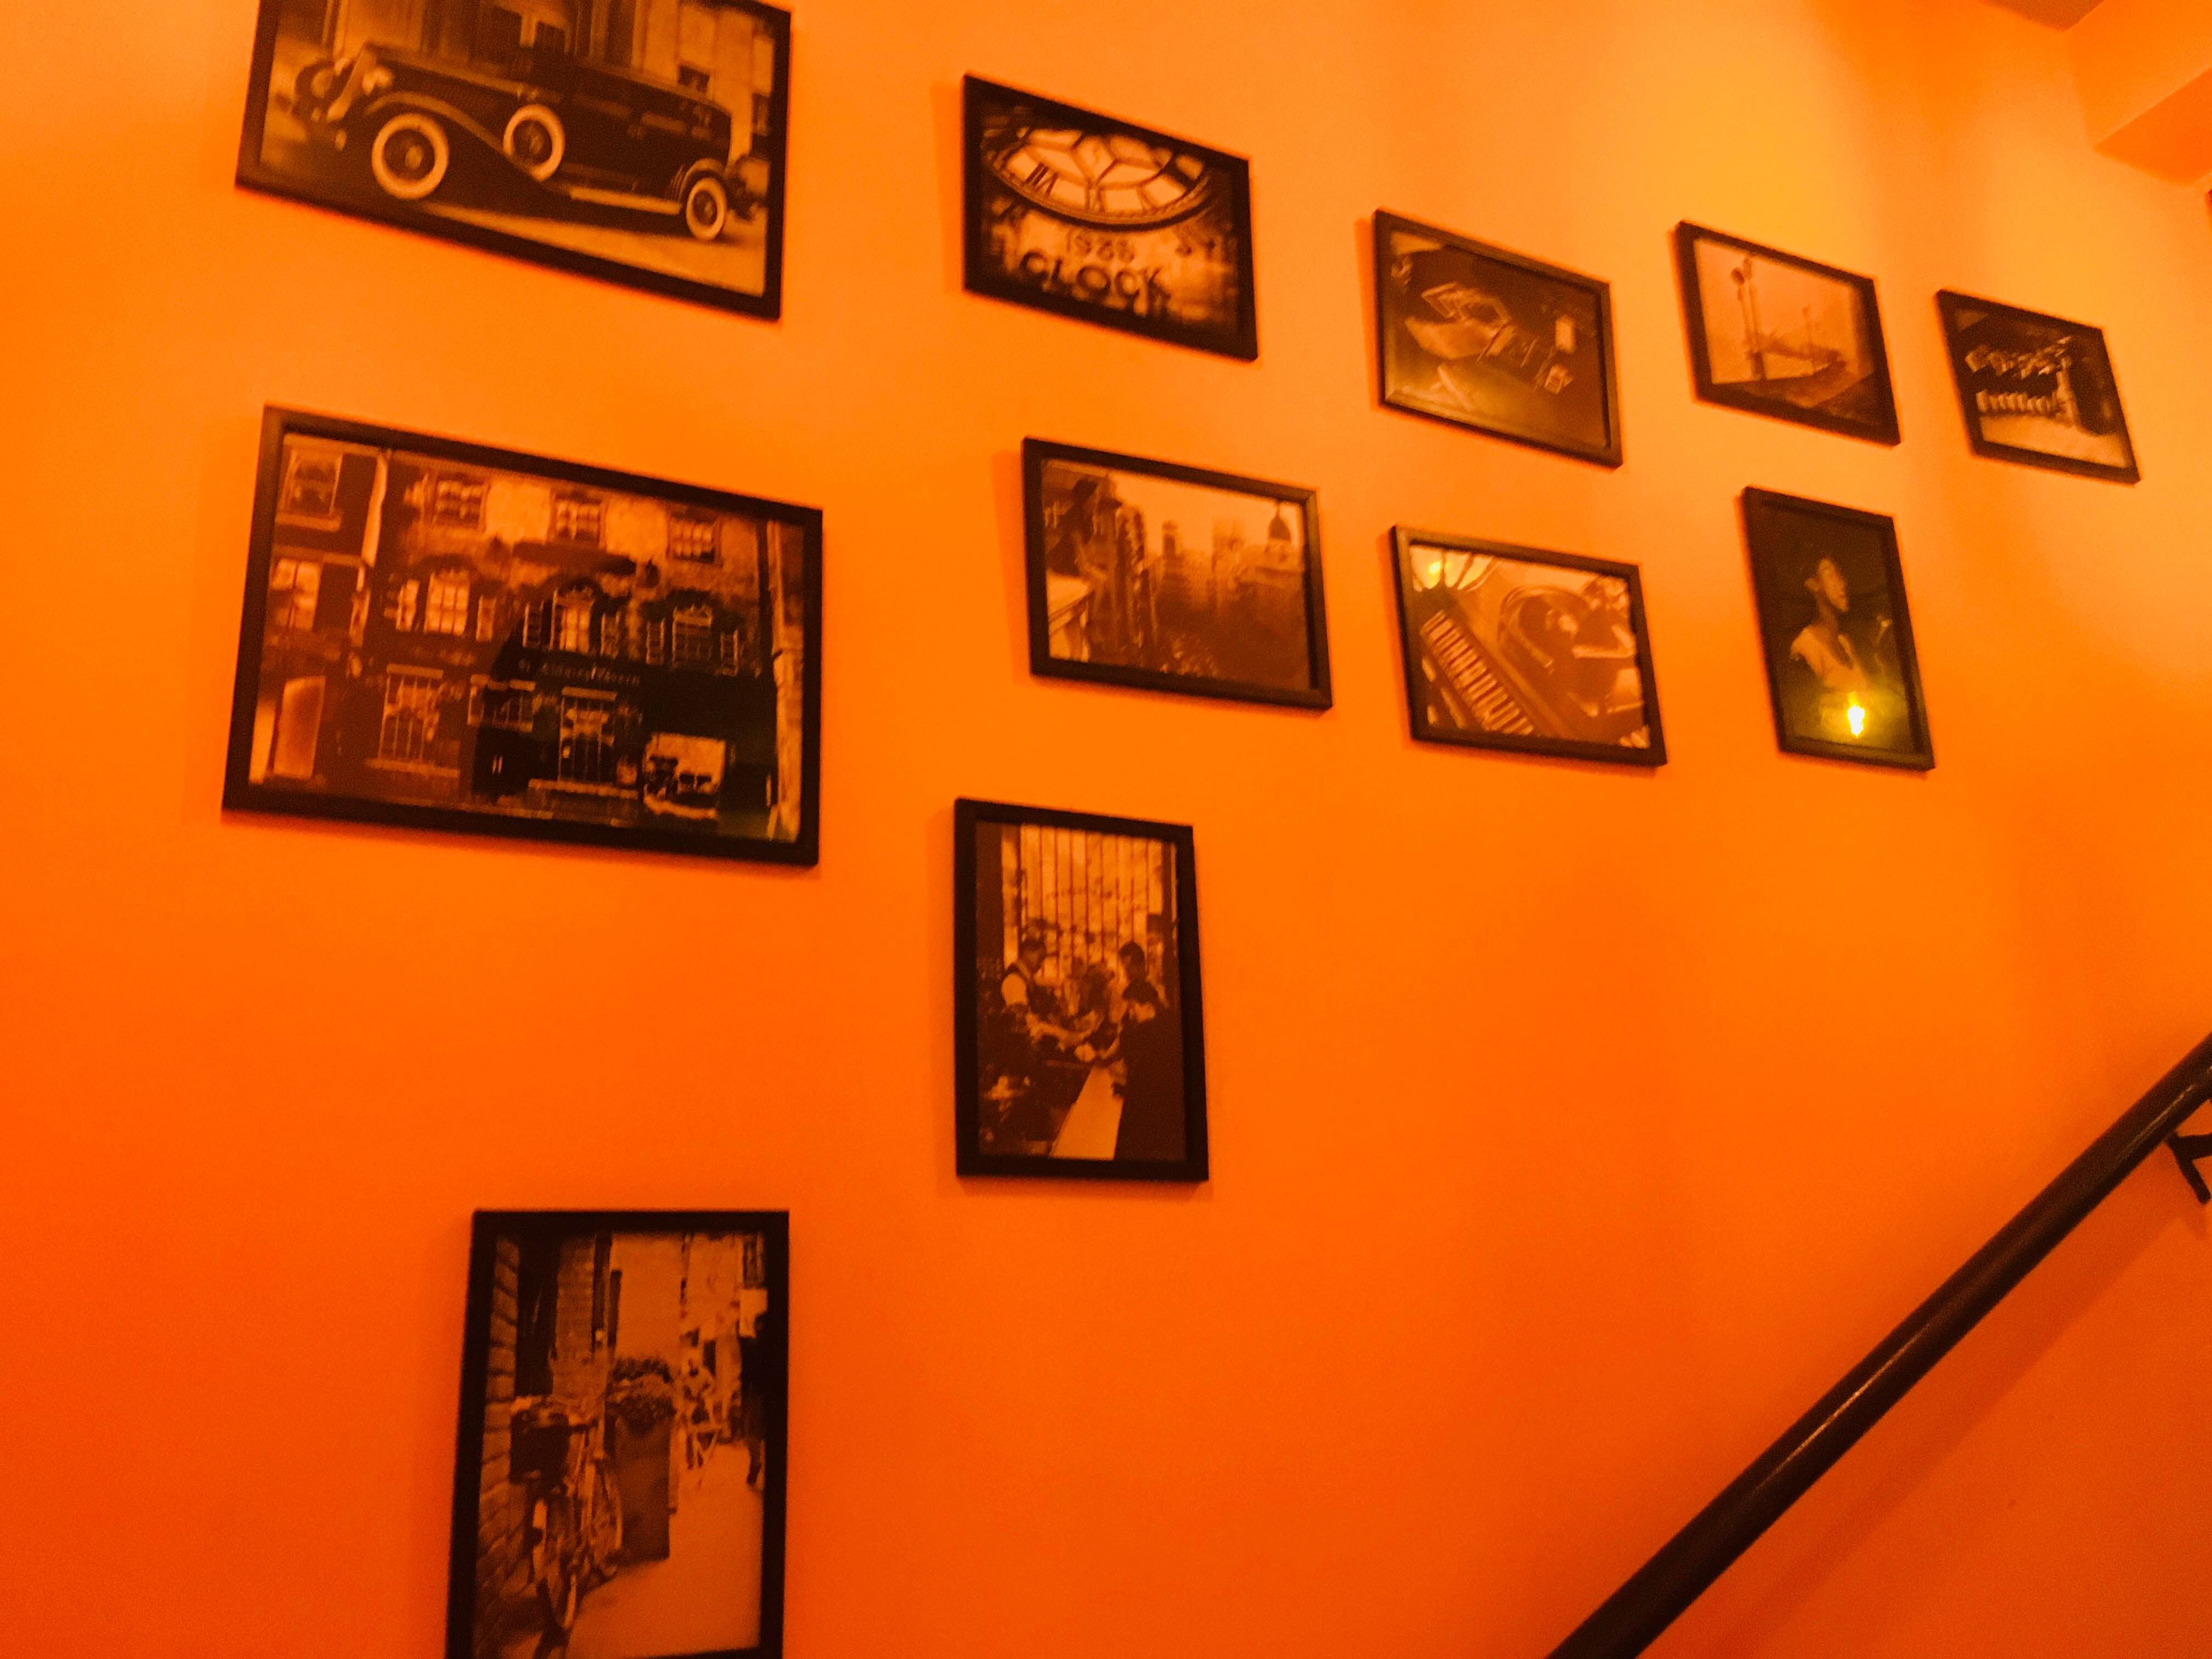 Orange,Wall,Art,Art gallery,Exhibition,Art exhibition,Visual arts,Collection,Vernissage,Event